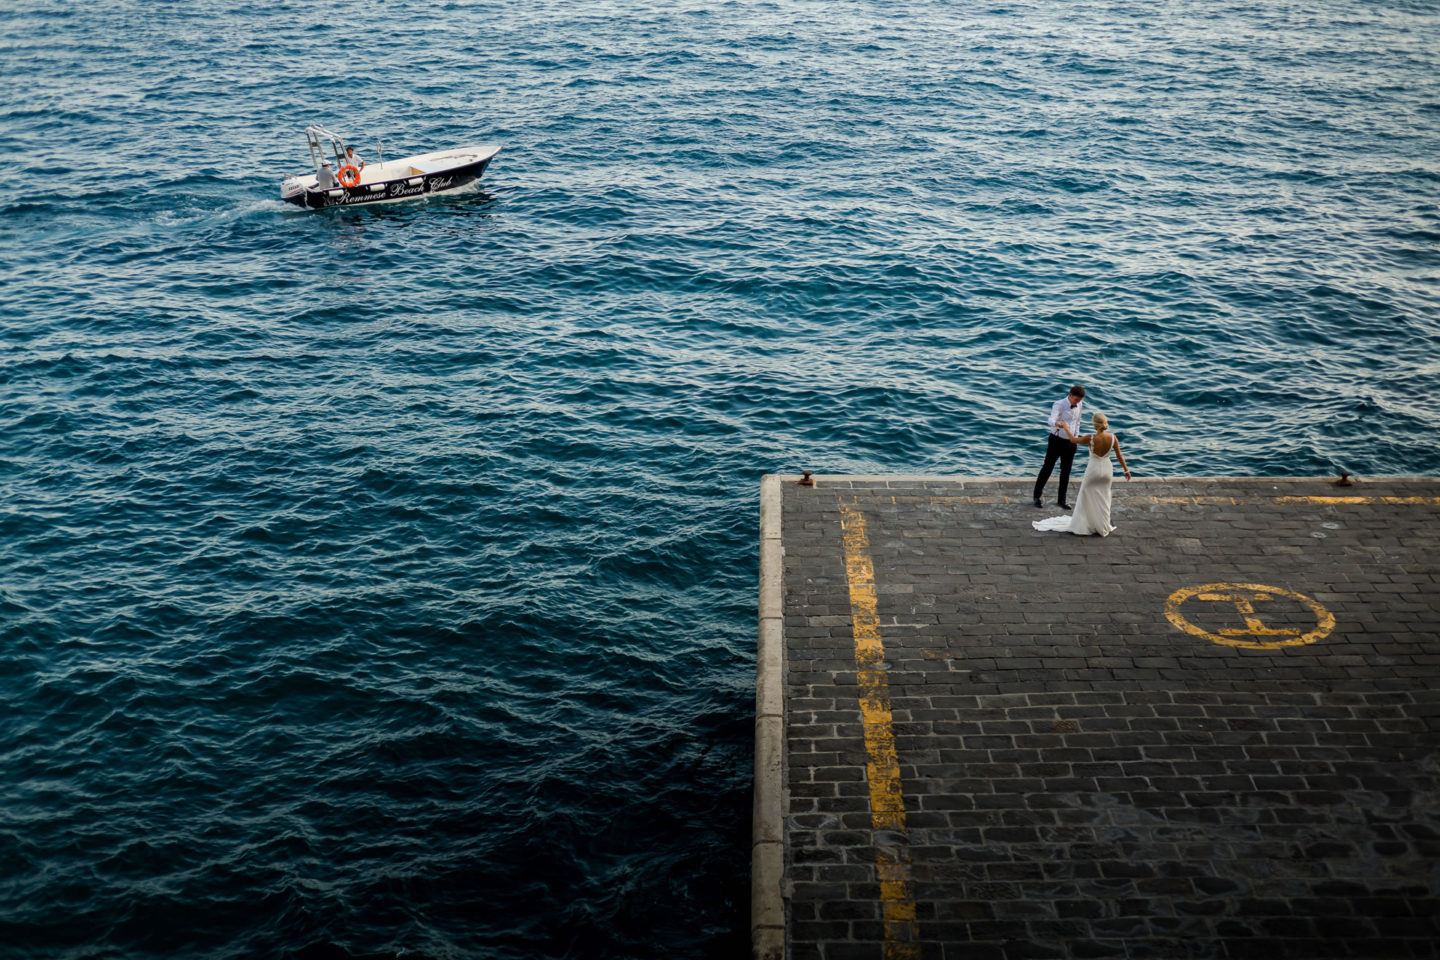 View - 43 :: Wedding in Positano. Sea and love :: Luxury wedding photography - 42 :: View - 43